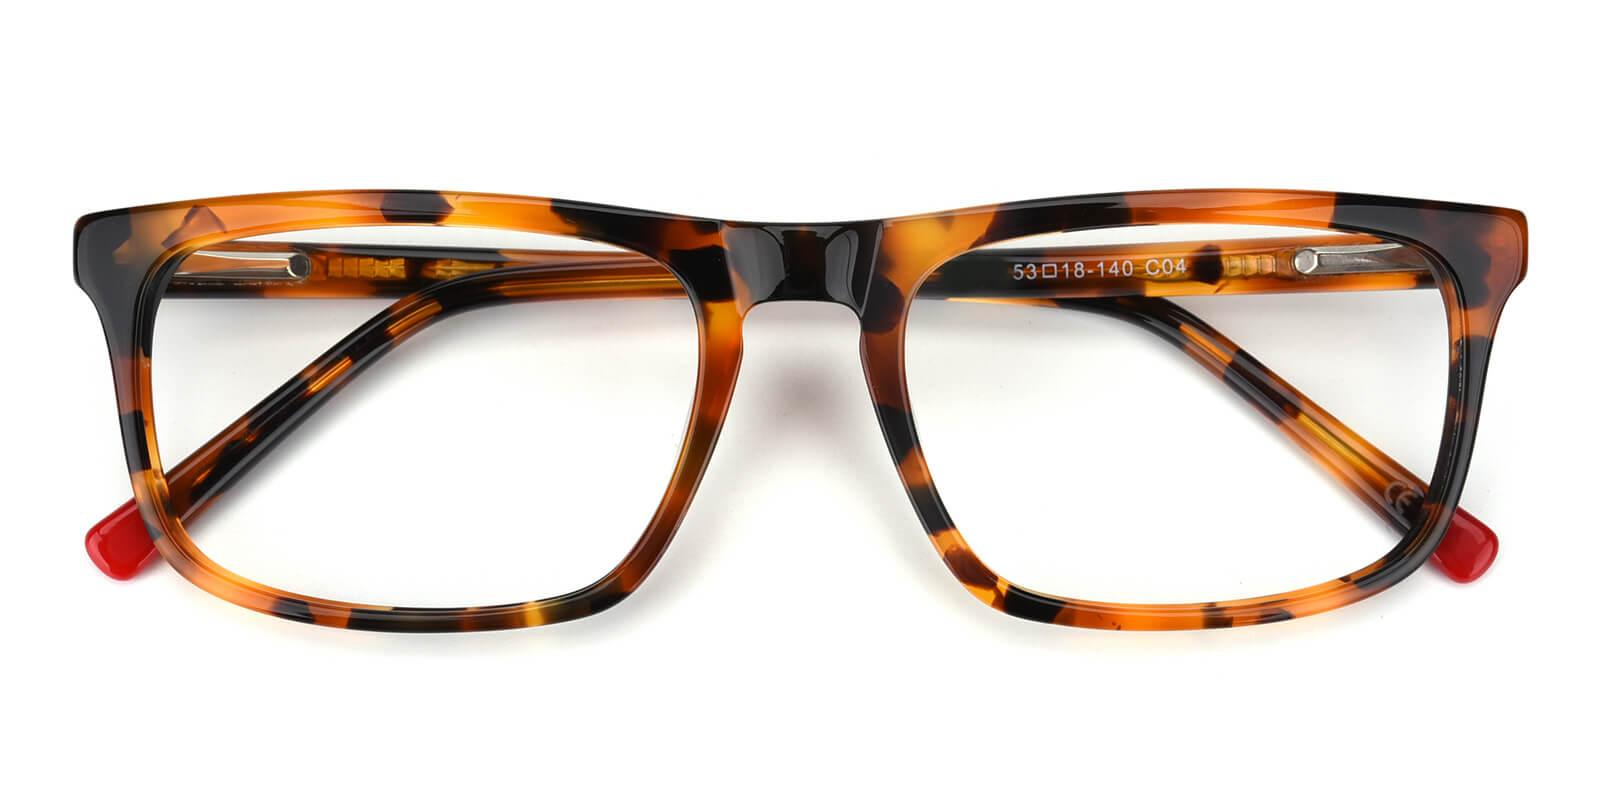 Etched-Tortoise-Rectangle-Acetate-Eyeglasses-detail